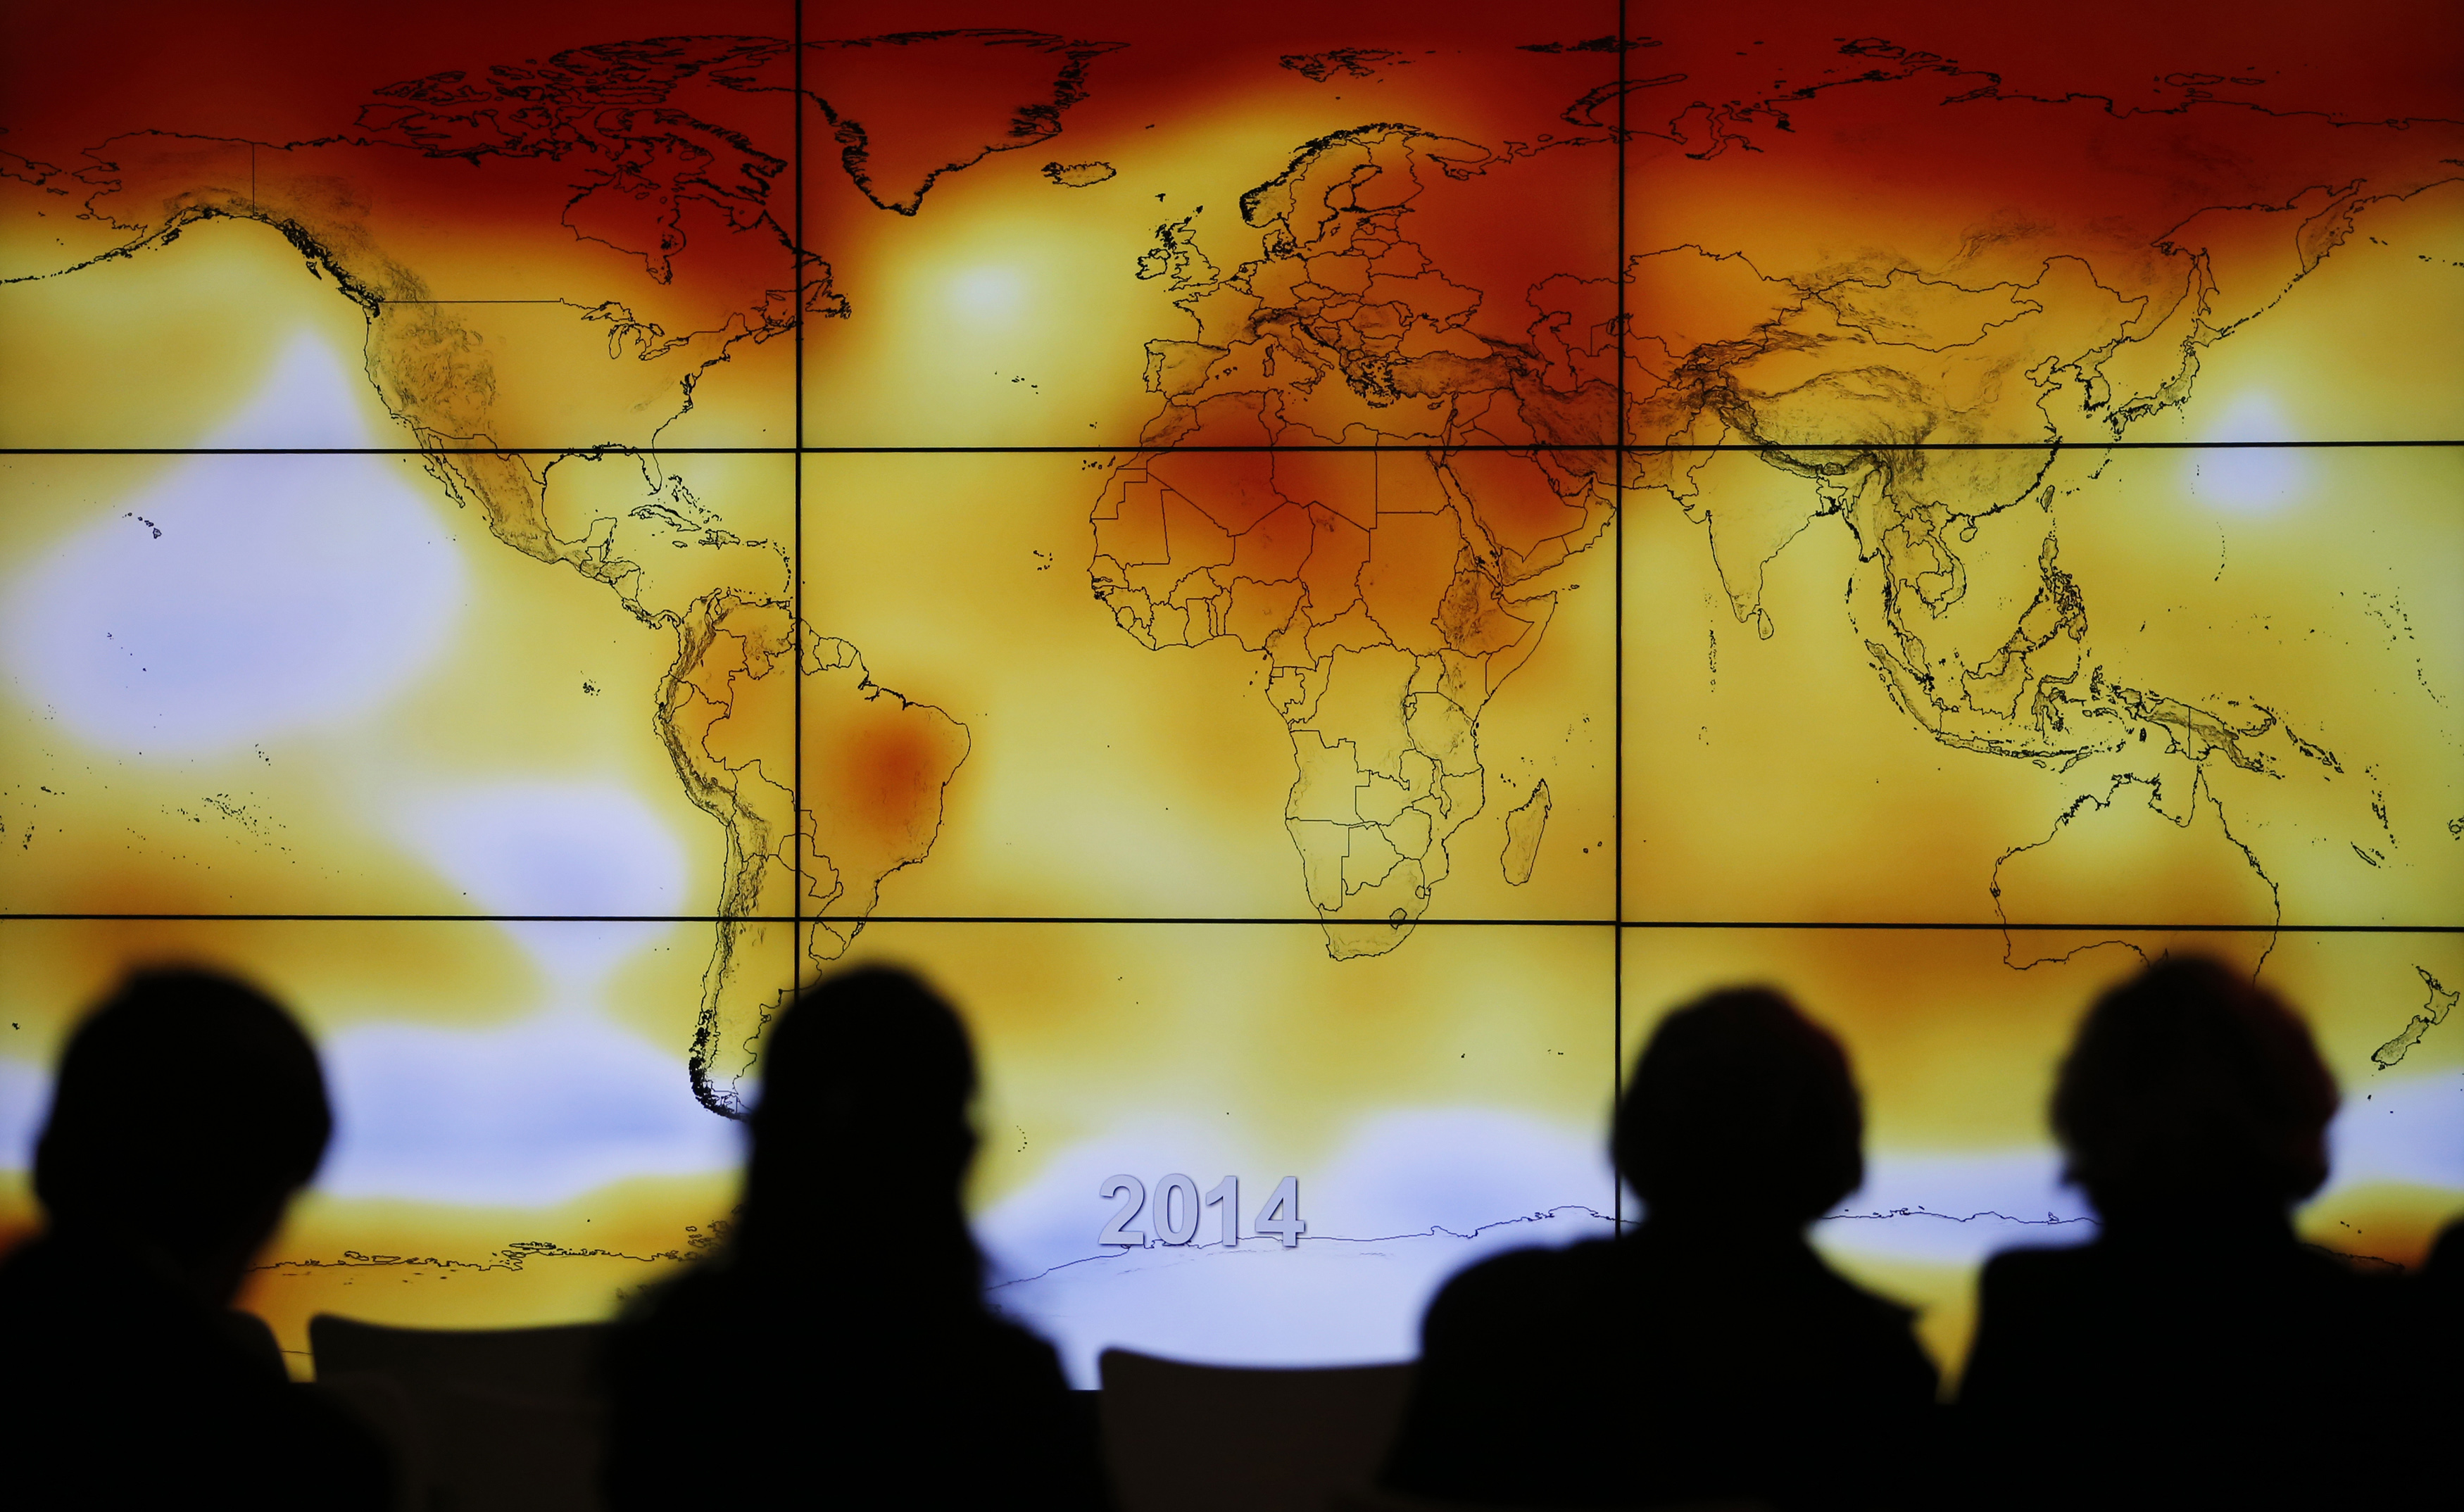 Participants are seen in silhouette as they look at a screen showing a world map with climate anomalies during the World Climate Change Conference 2015 (COP21) at Le Bourget, near Paris, Dec 8, 2015.